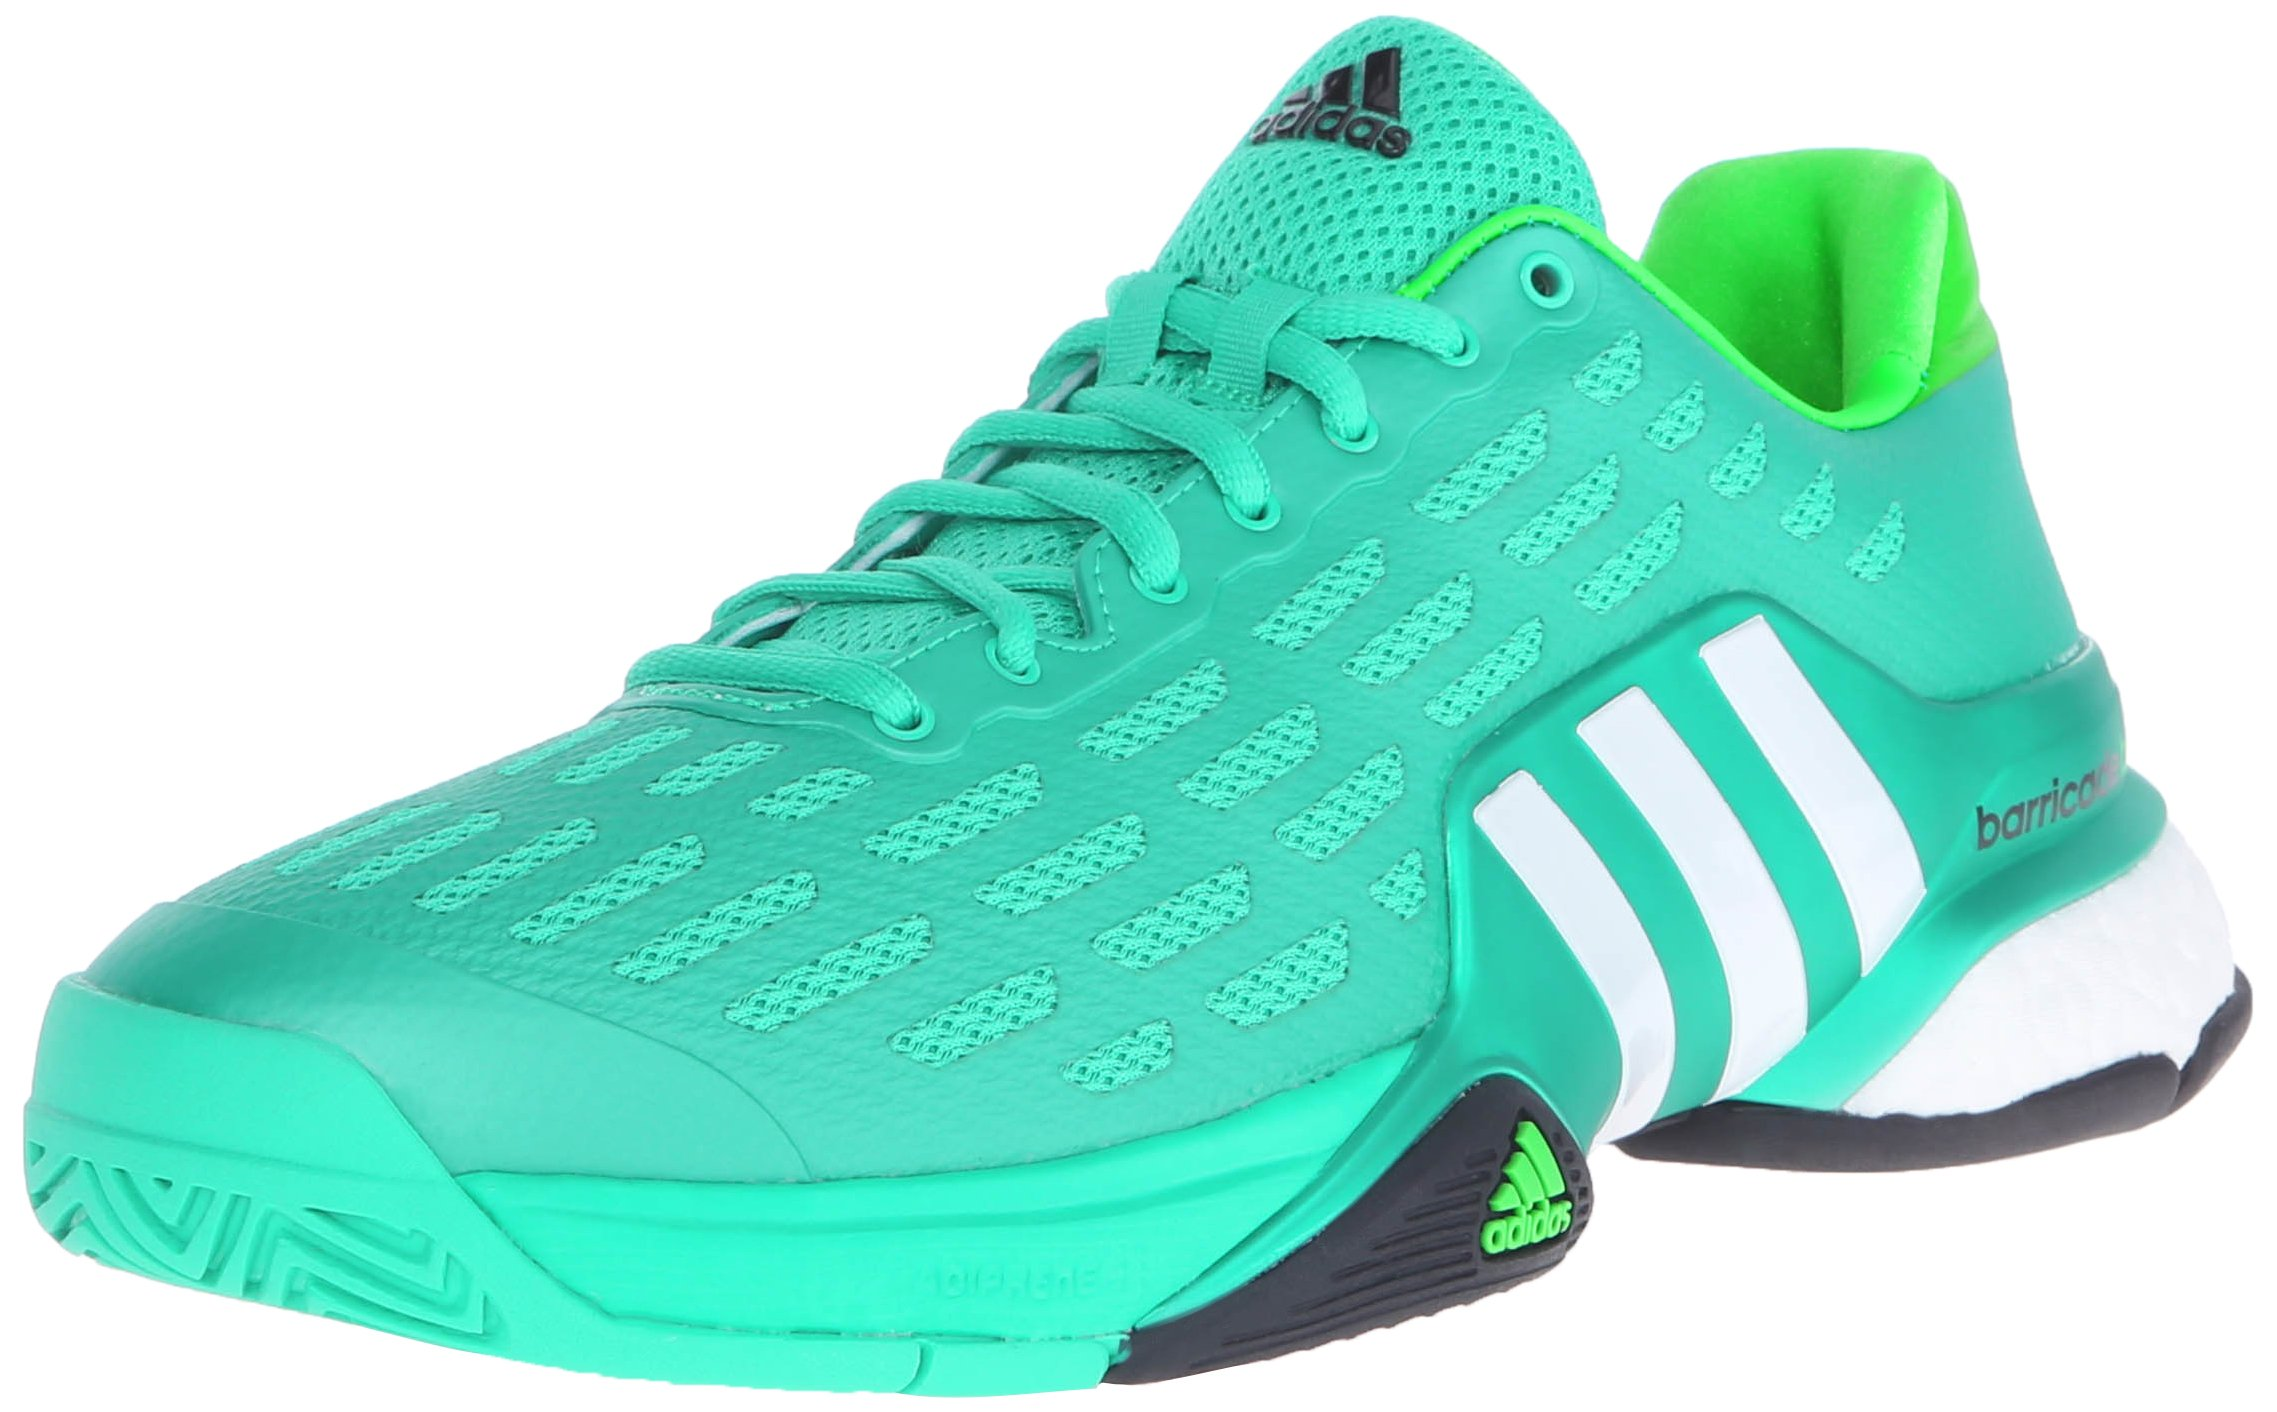 wholesale dealer 260b4 36e50 Galleon - Adidas Performance Men s Barricade 2016 Boost Tennis Shoes